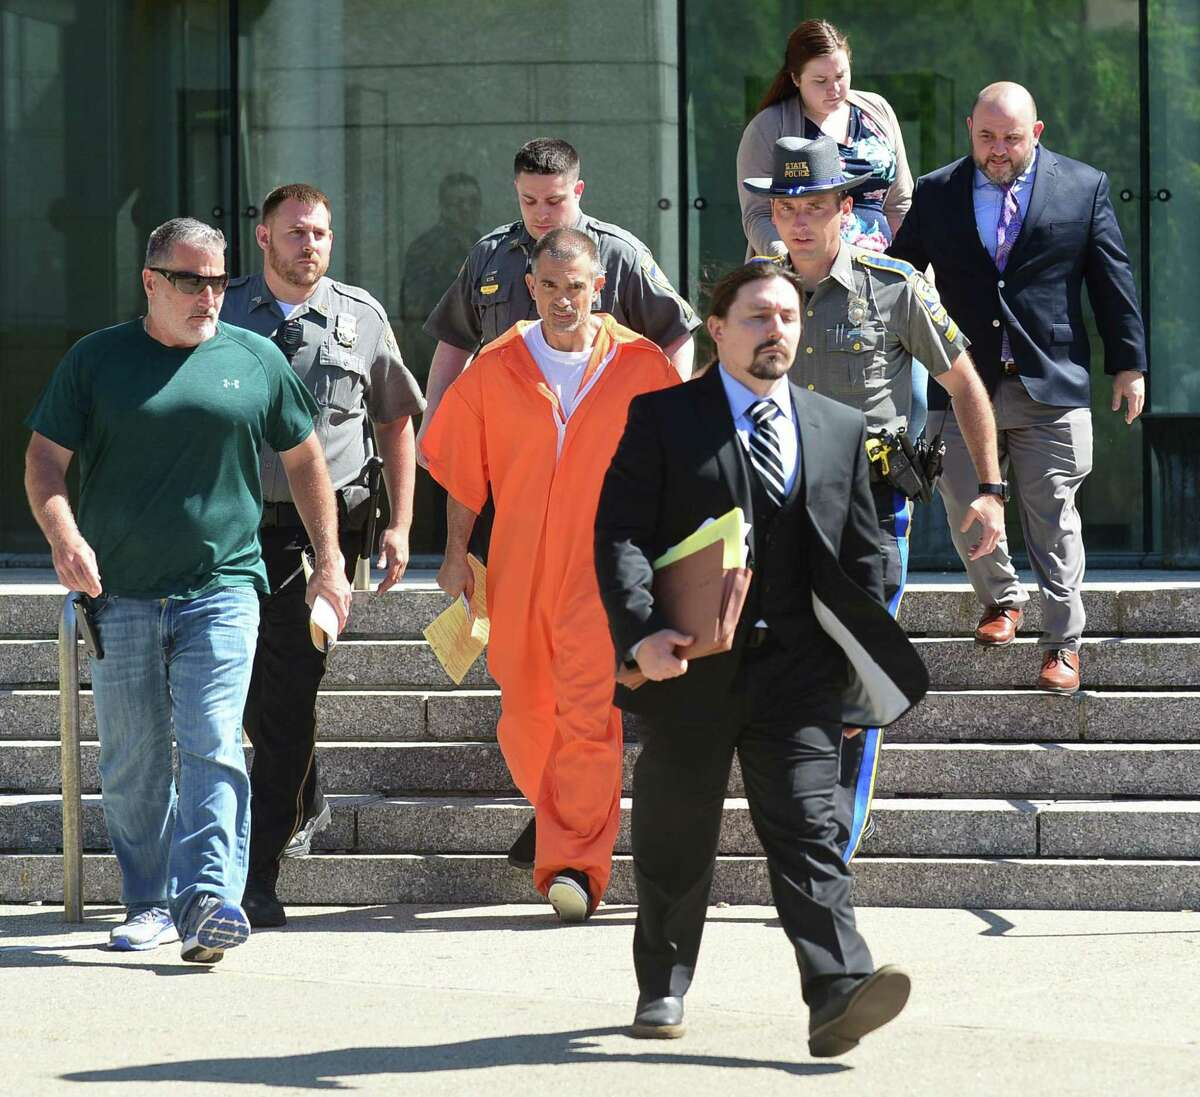 Fotis Dulos exits Stamford Superior Court with bondsman, state police and judicial marshals after posting $500,000 bond for charges of tampering with evidence and hindering the investigation into the disappearance of his wife, Jennifer Dulos, Tuesday, June 11, 2019 in Stamford, Conn.